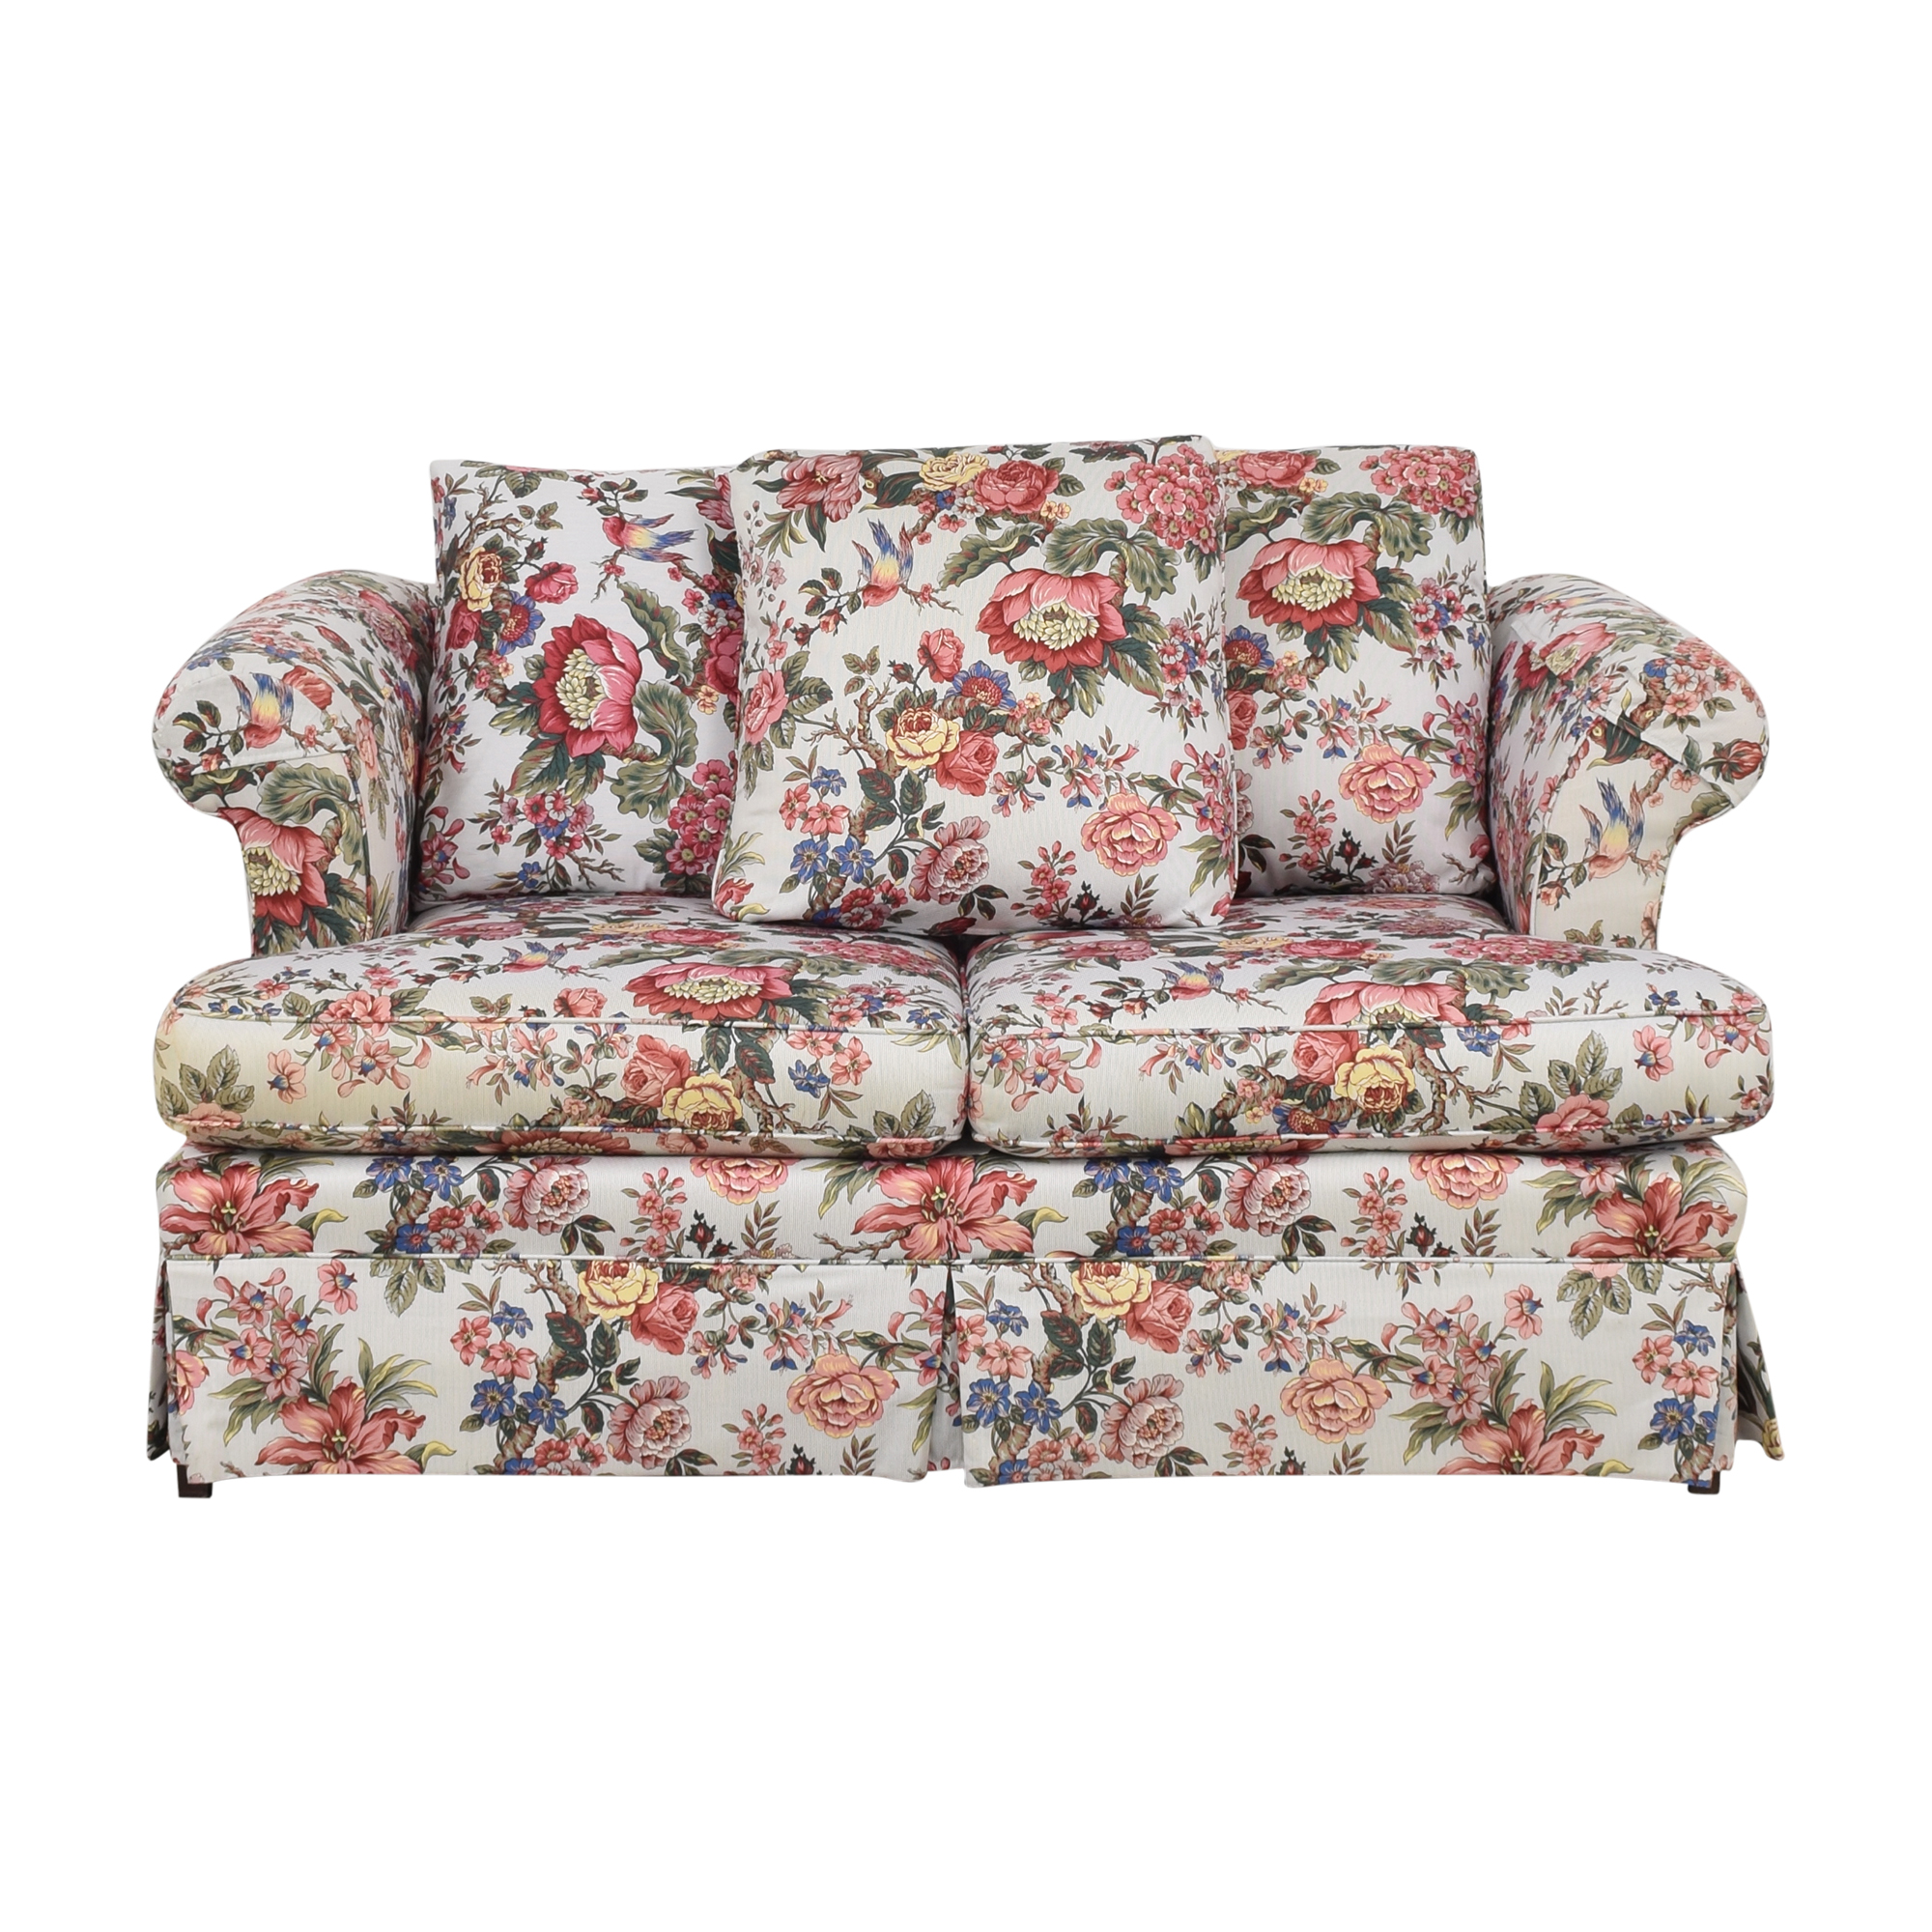 buy Bloomingdale's Bloomingdale's Custom Sofa online